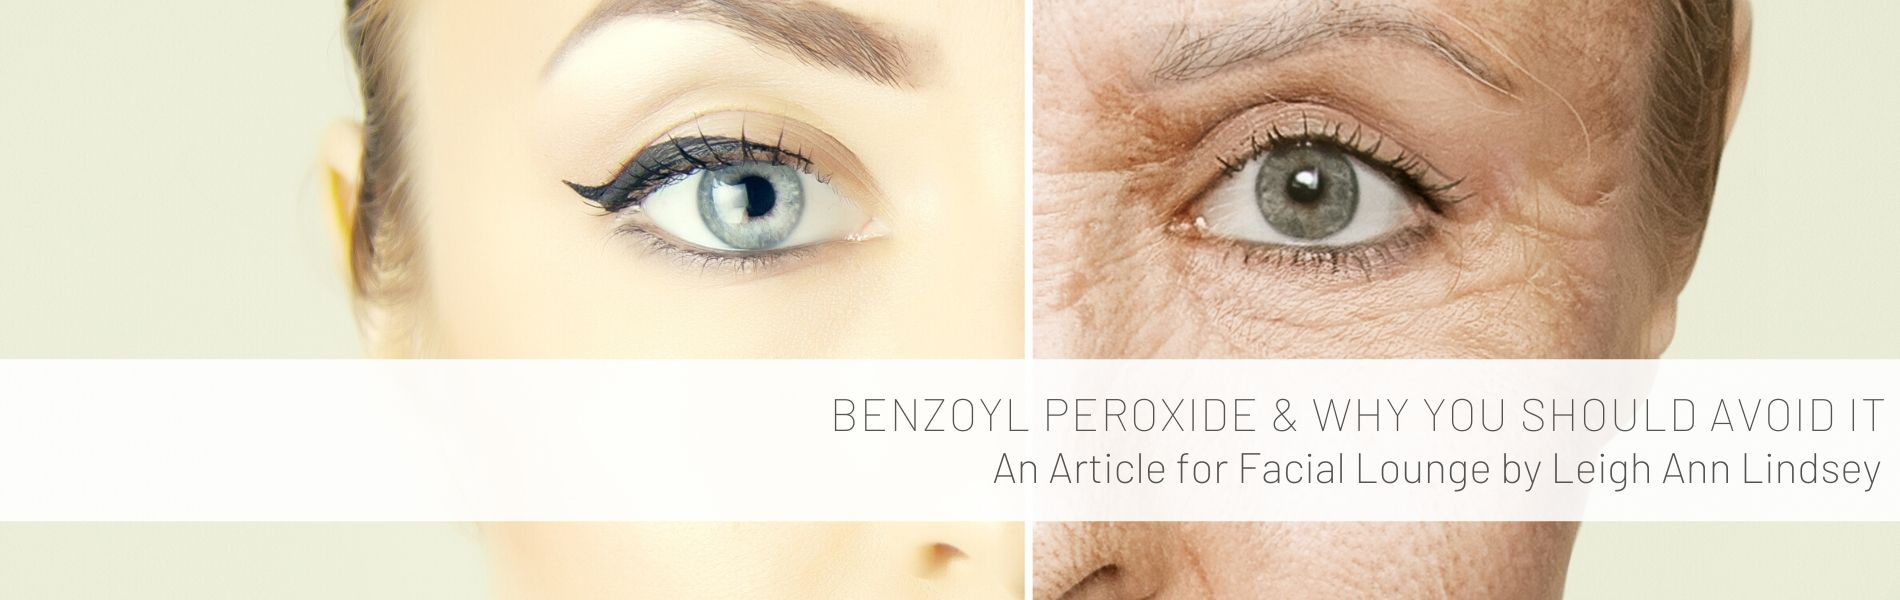 benzoyl peroxide and why you should avoid it by Leigh Ann Lindsey